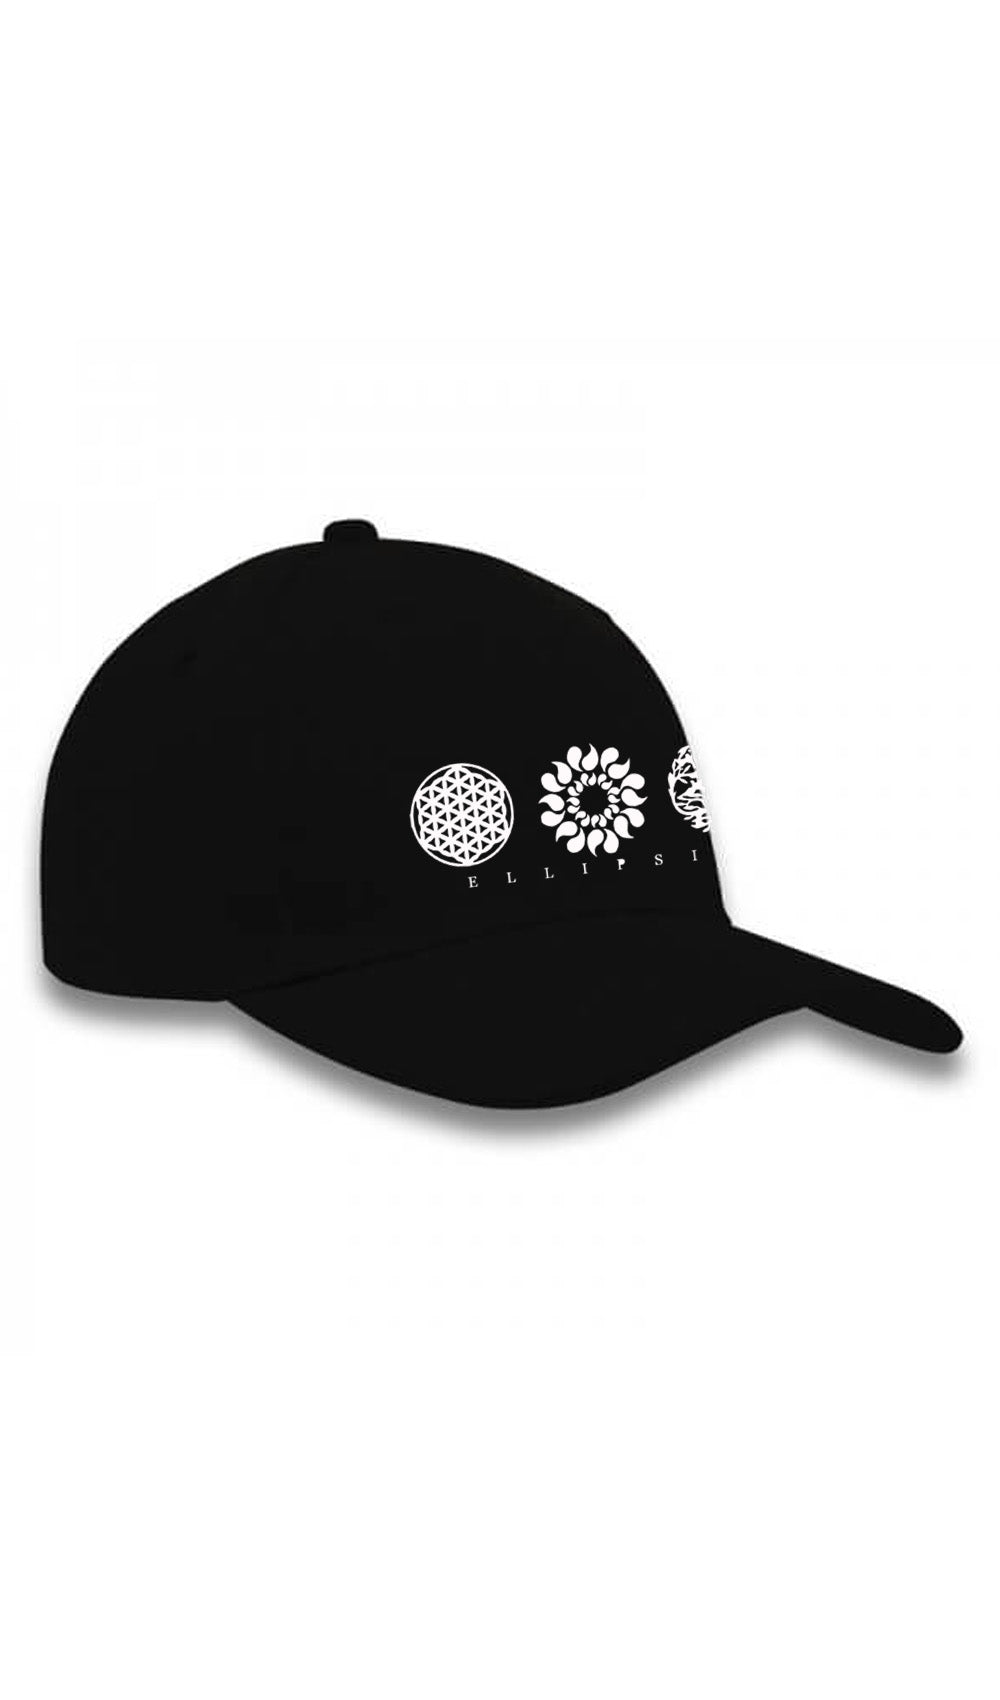 Ellipsis - Ellipsis Branded Black  Cap